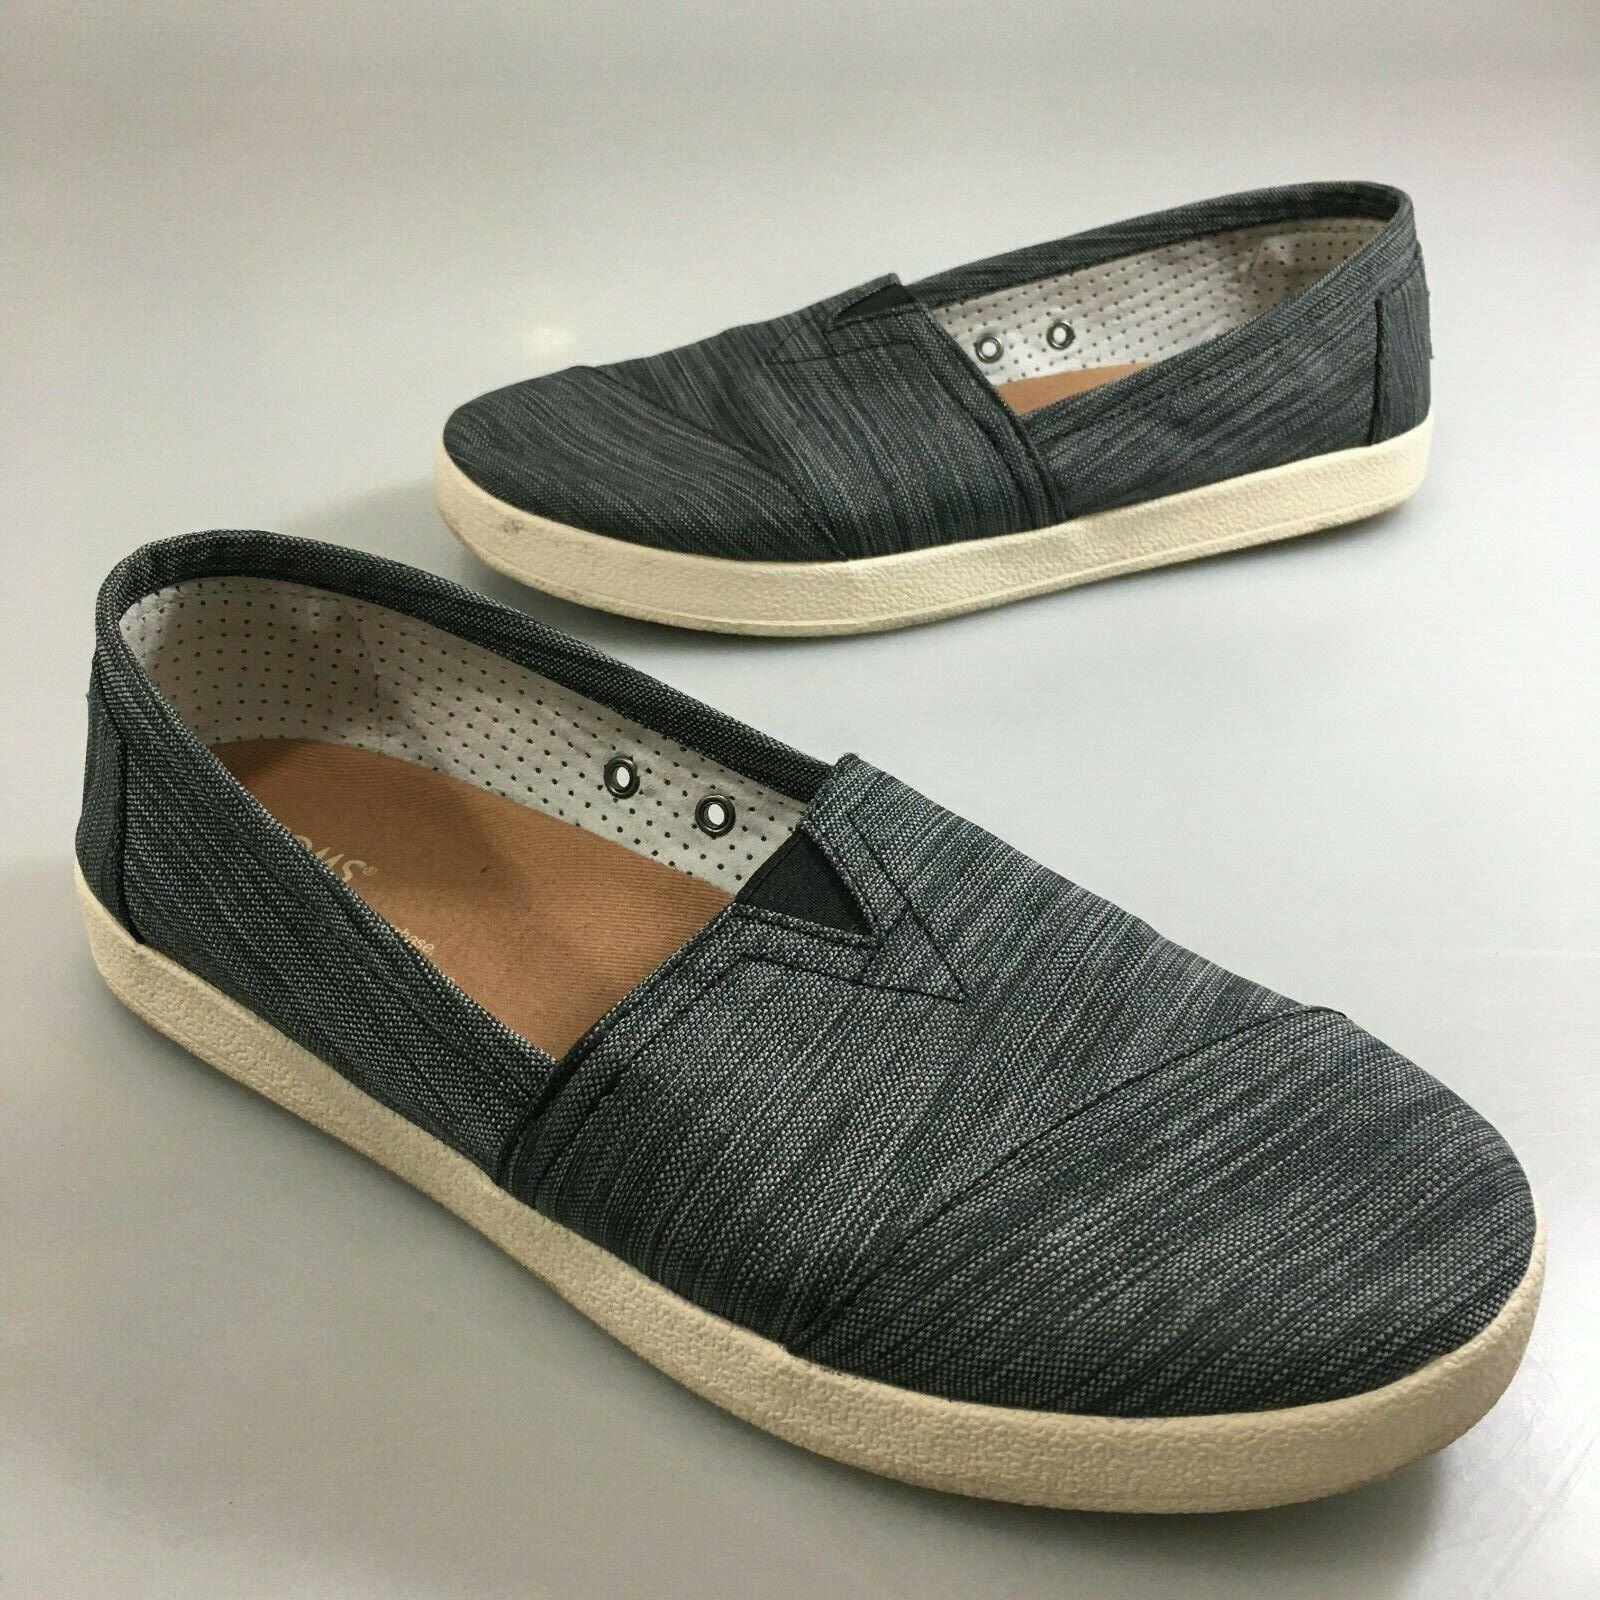 Toms Womens 8.5 Charcoal Gray Canvas Slip-On Shoes Flats